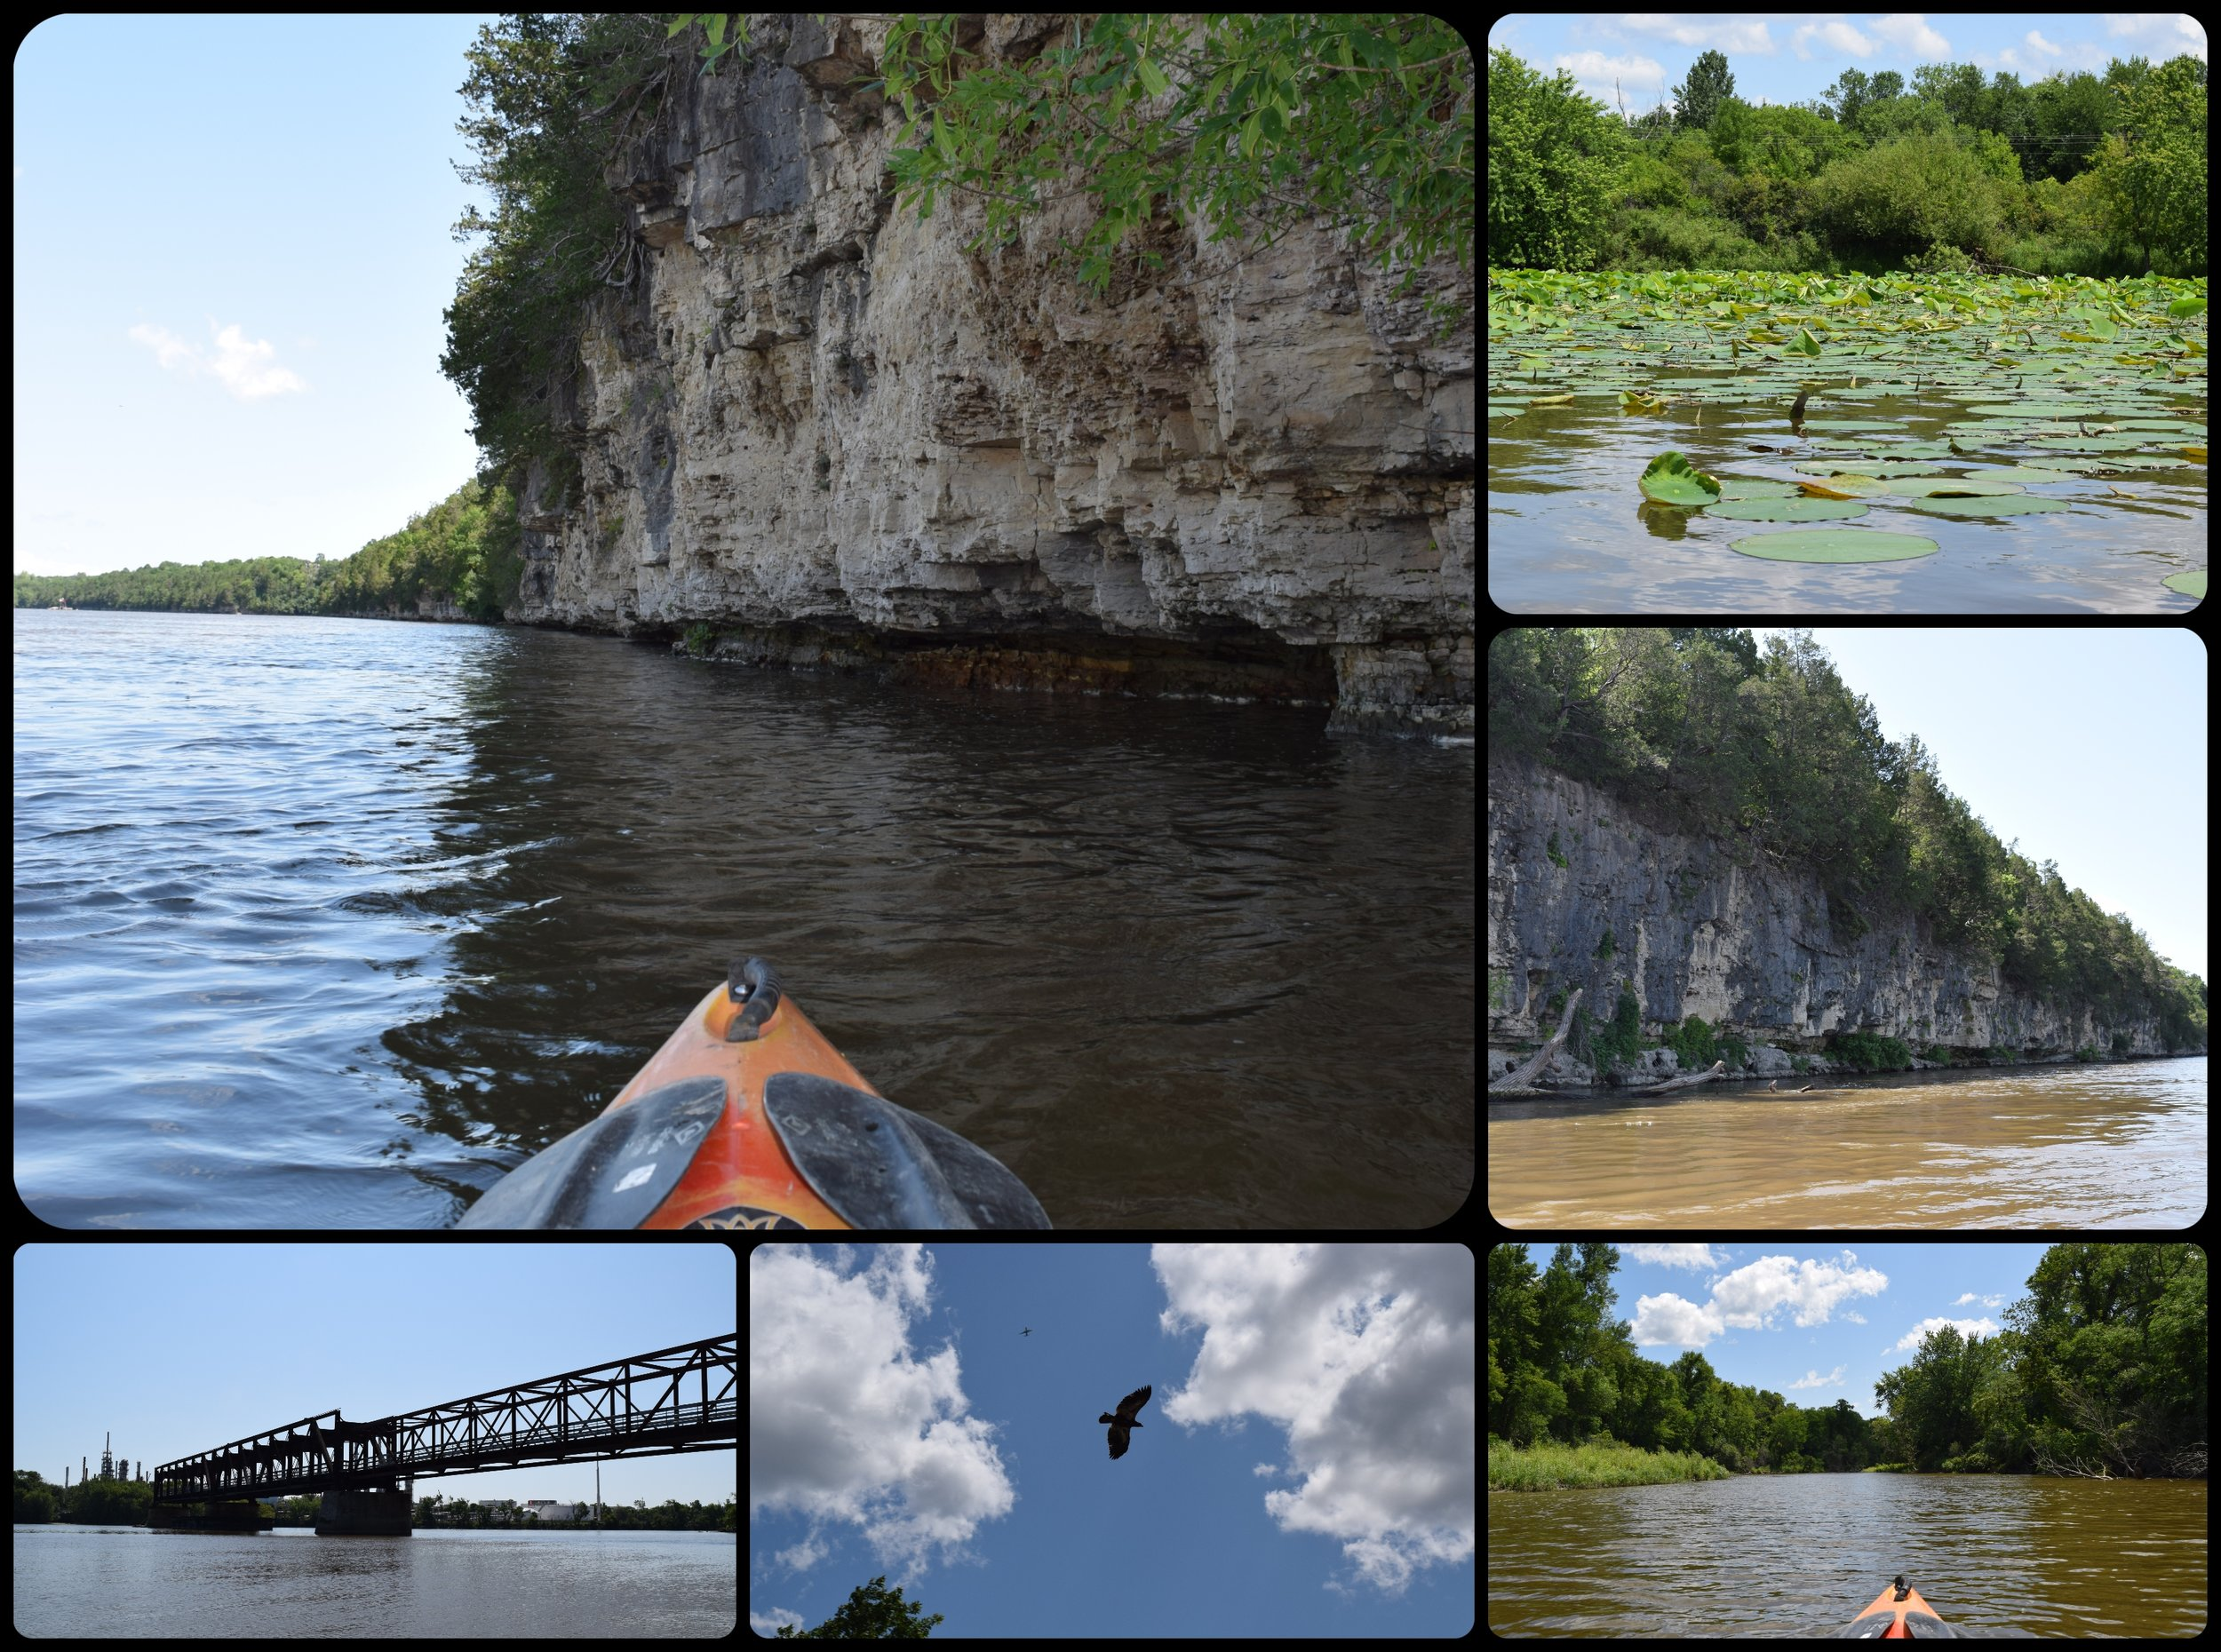 Lower Mississippi River Tour - Explore the bluffs, sandbars & backwaters of the lower Mississippi River from Mississippi Pub down to Grey Cloud Island on this paddle and pub tour.